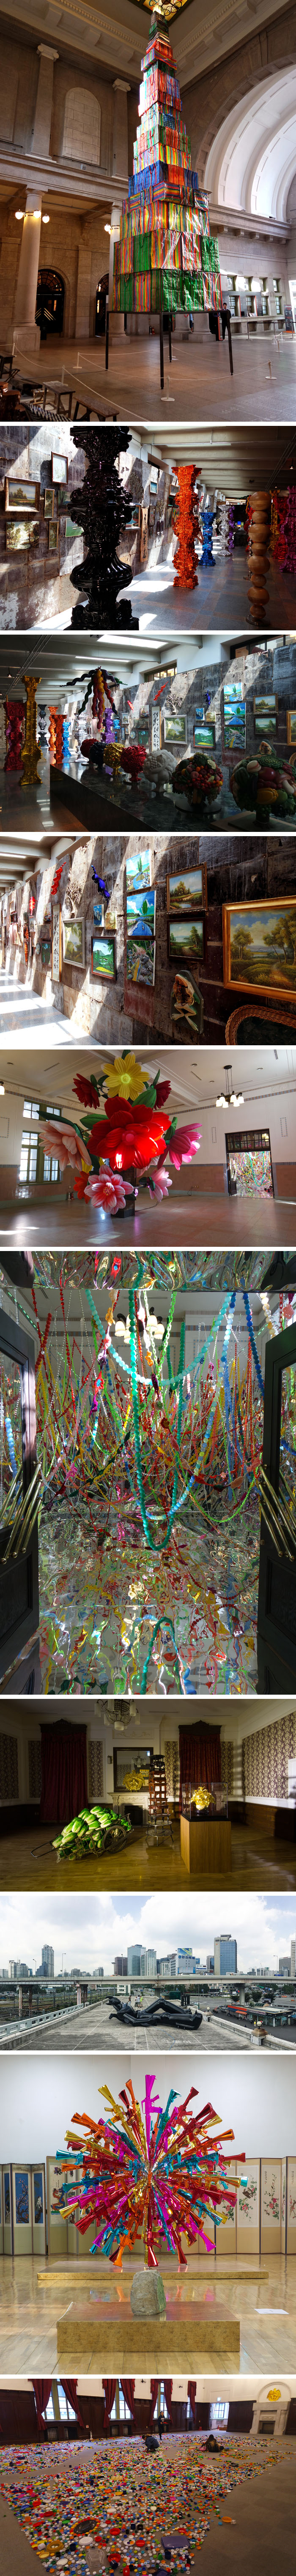 CHOI JEONG HWA http://www.widewalls.ch/artist/choi-jeong-hwa/ #contemporary #art #installation